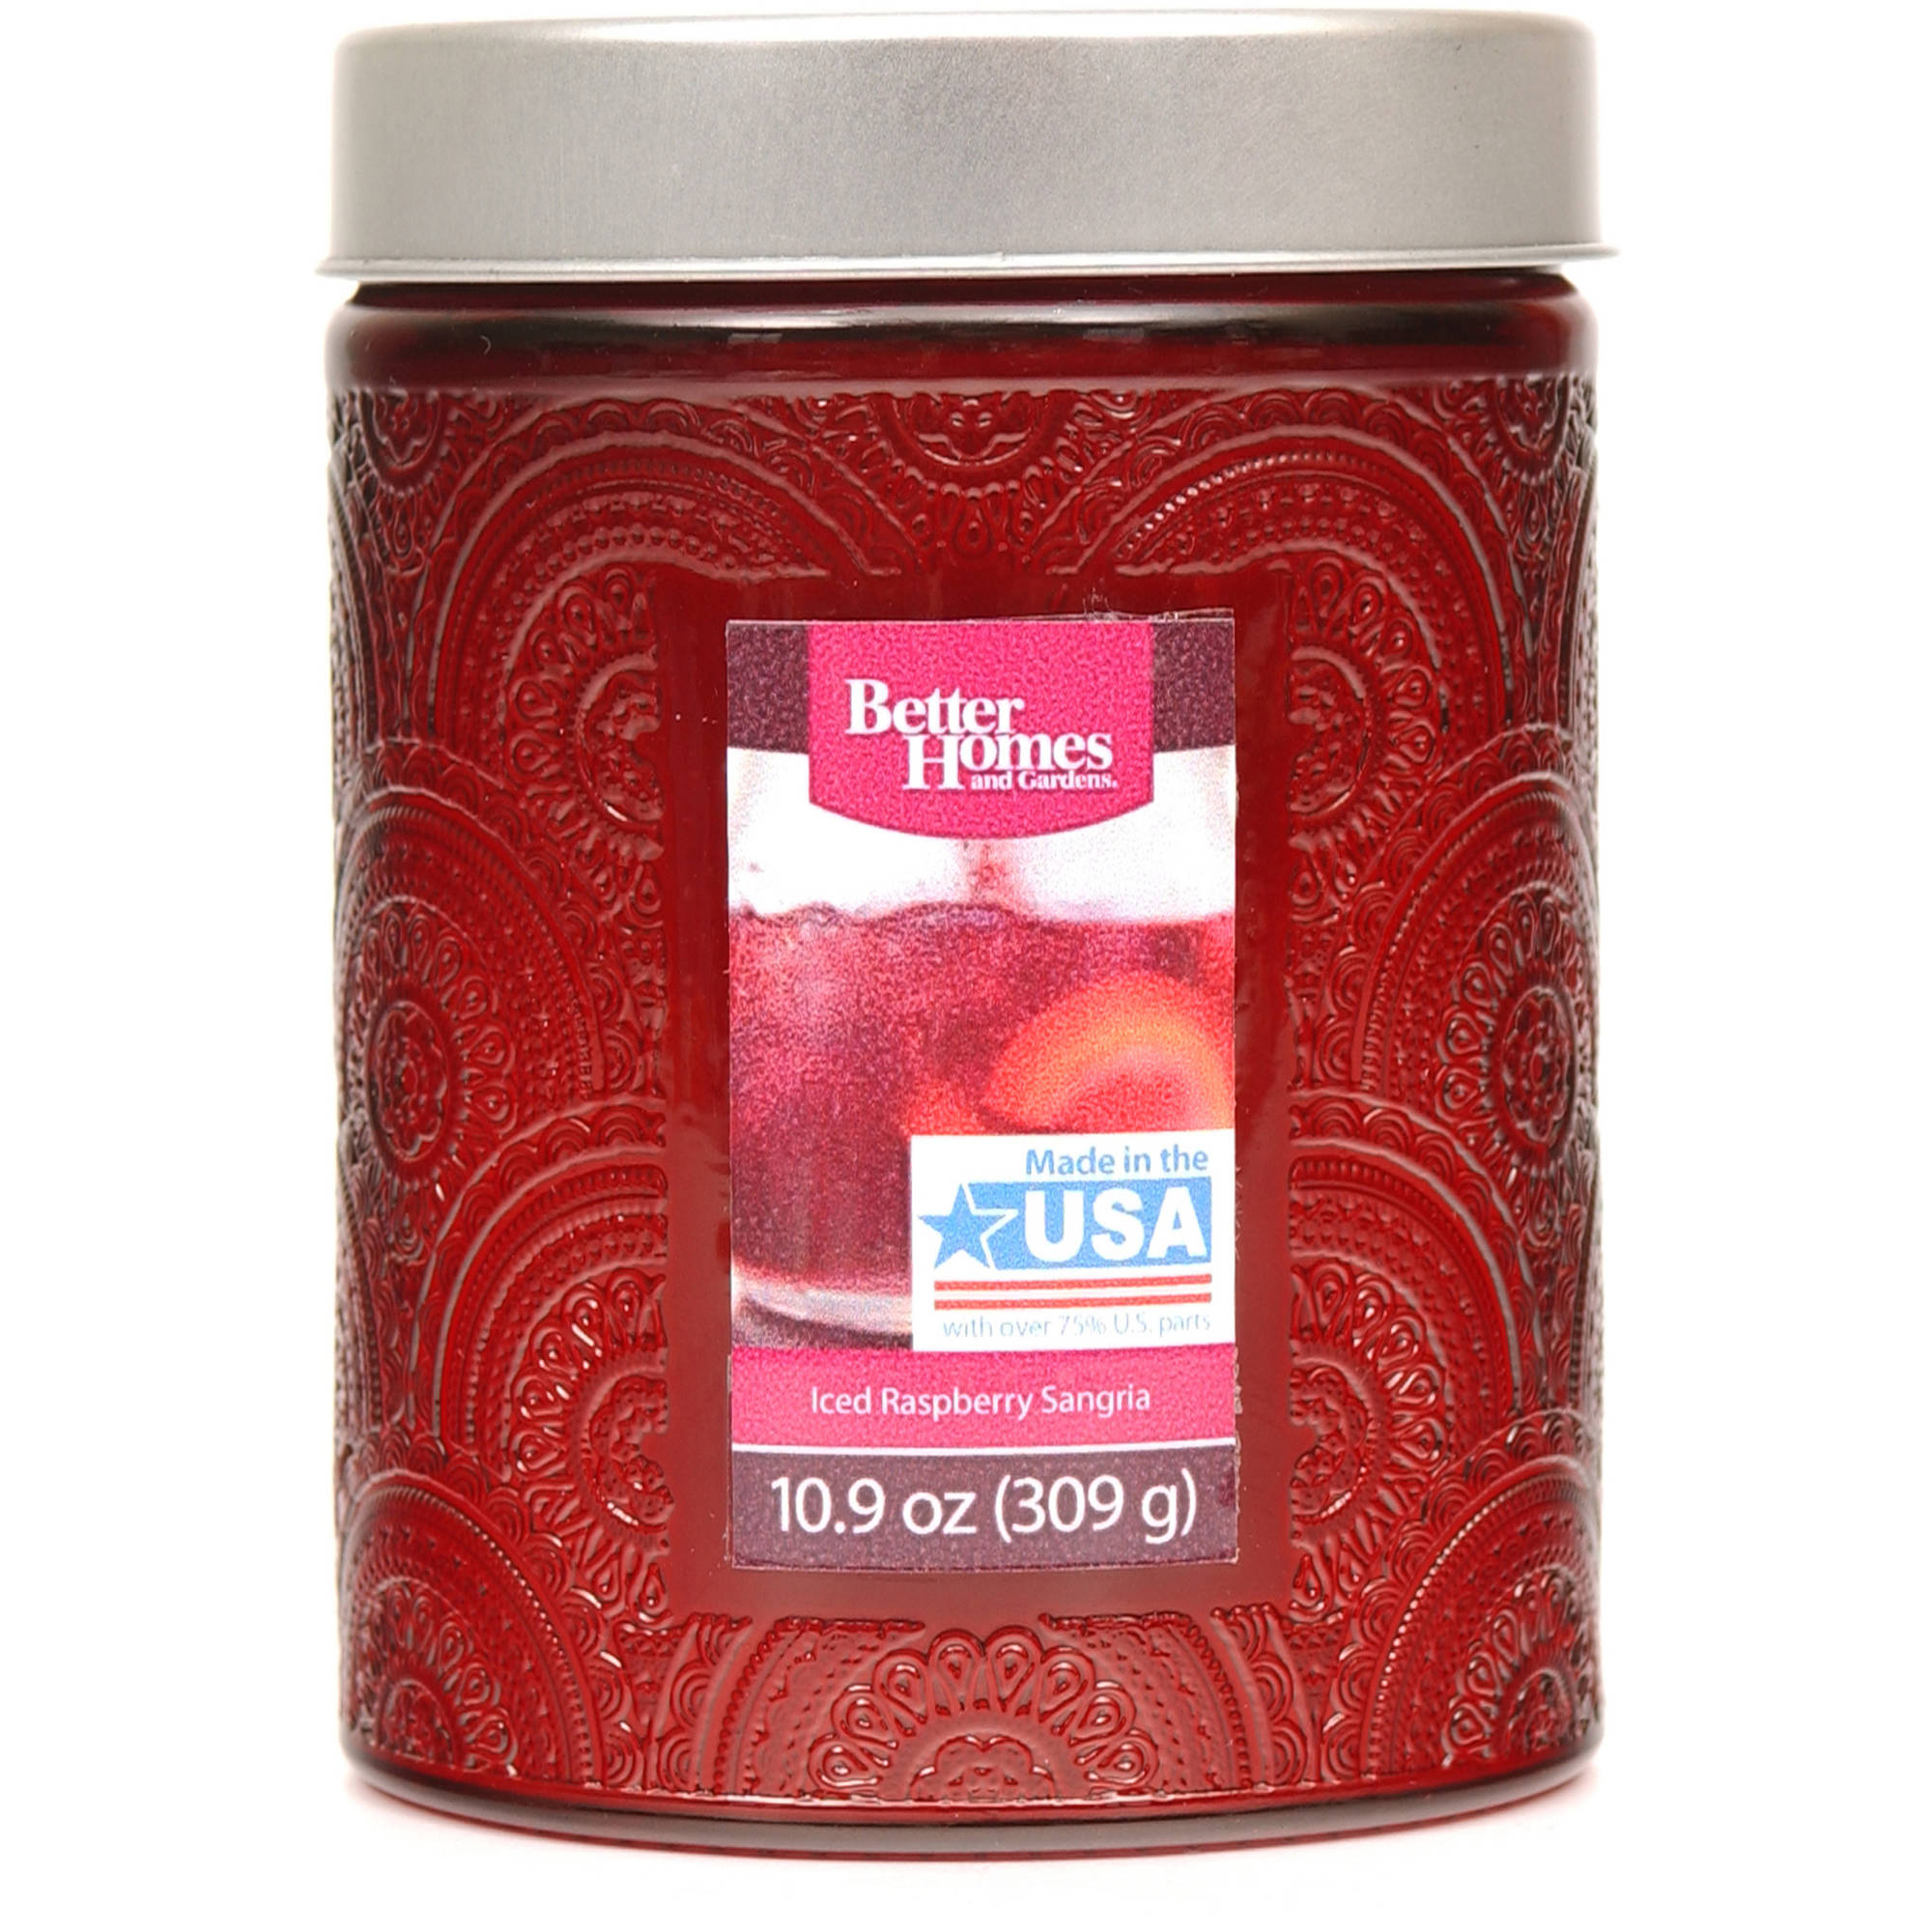 Better Homes and Gardens 10.9-Ounce Candle, Iced Raspberry Sangria